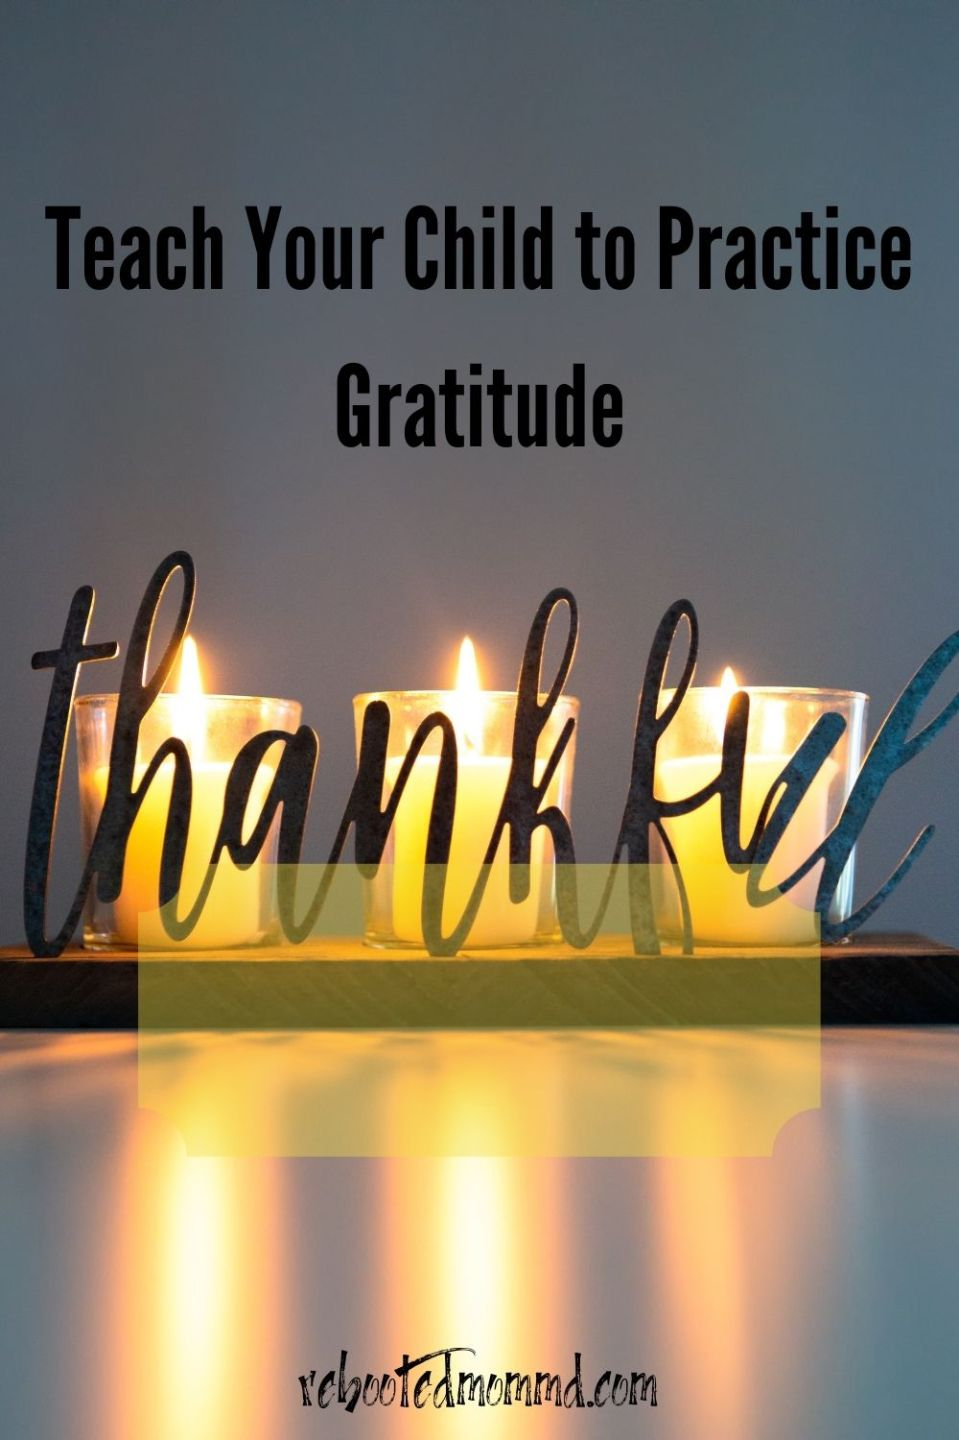 Teach Your Child to Practice Gratitude